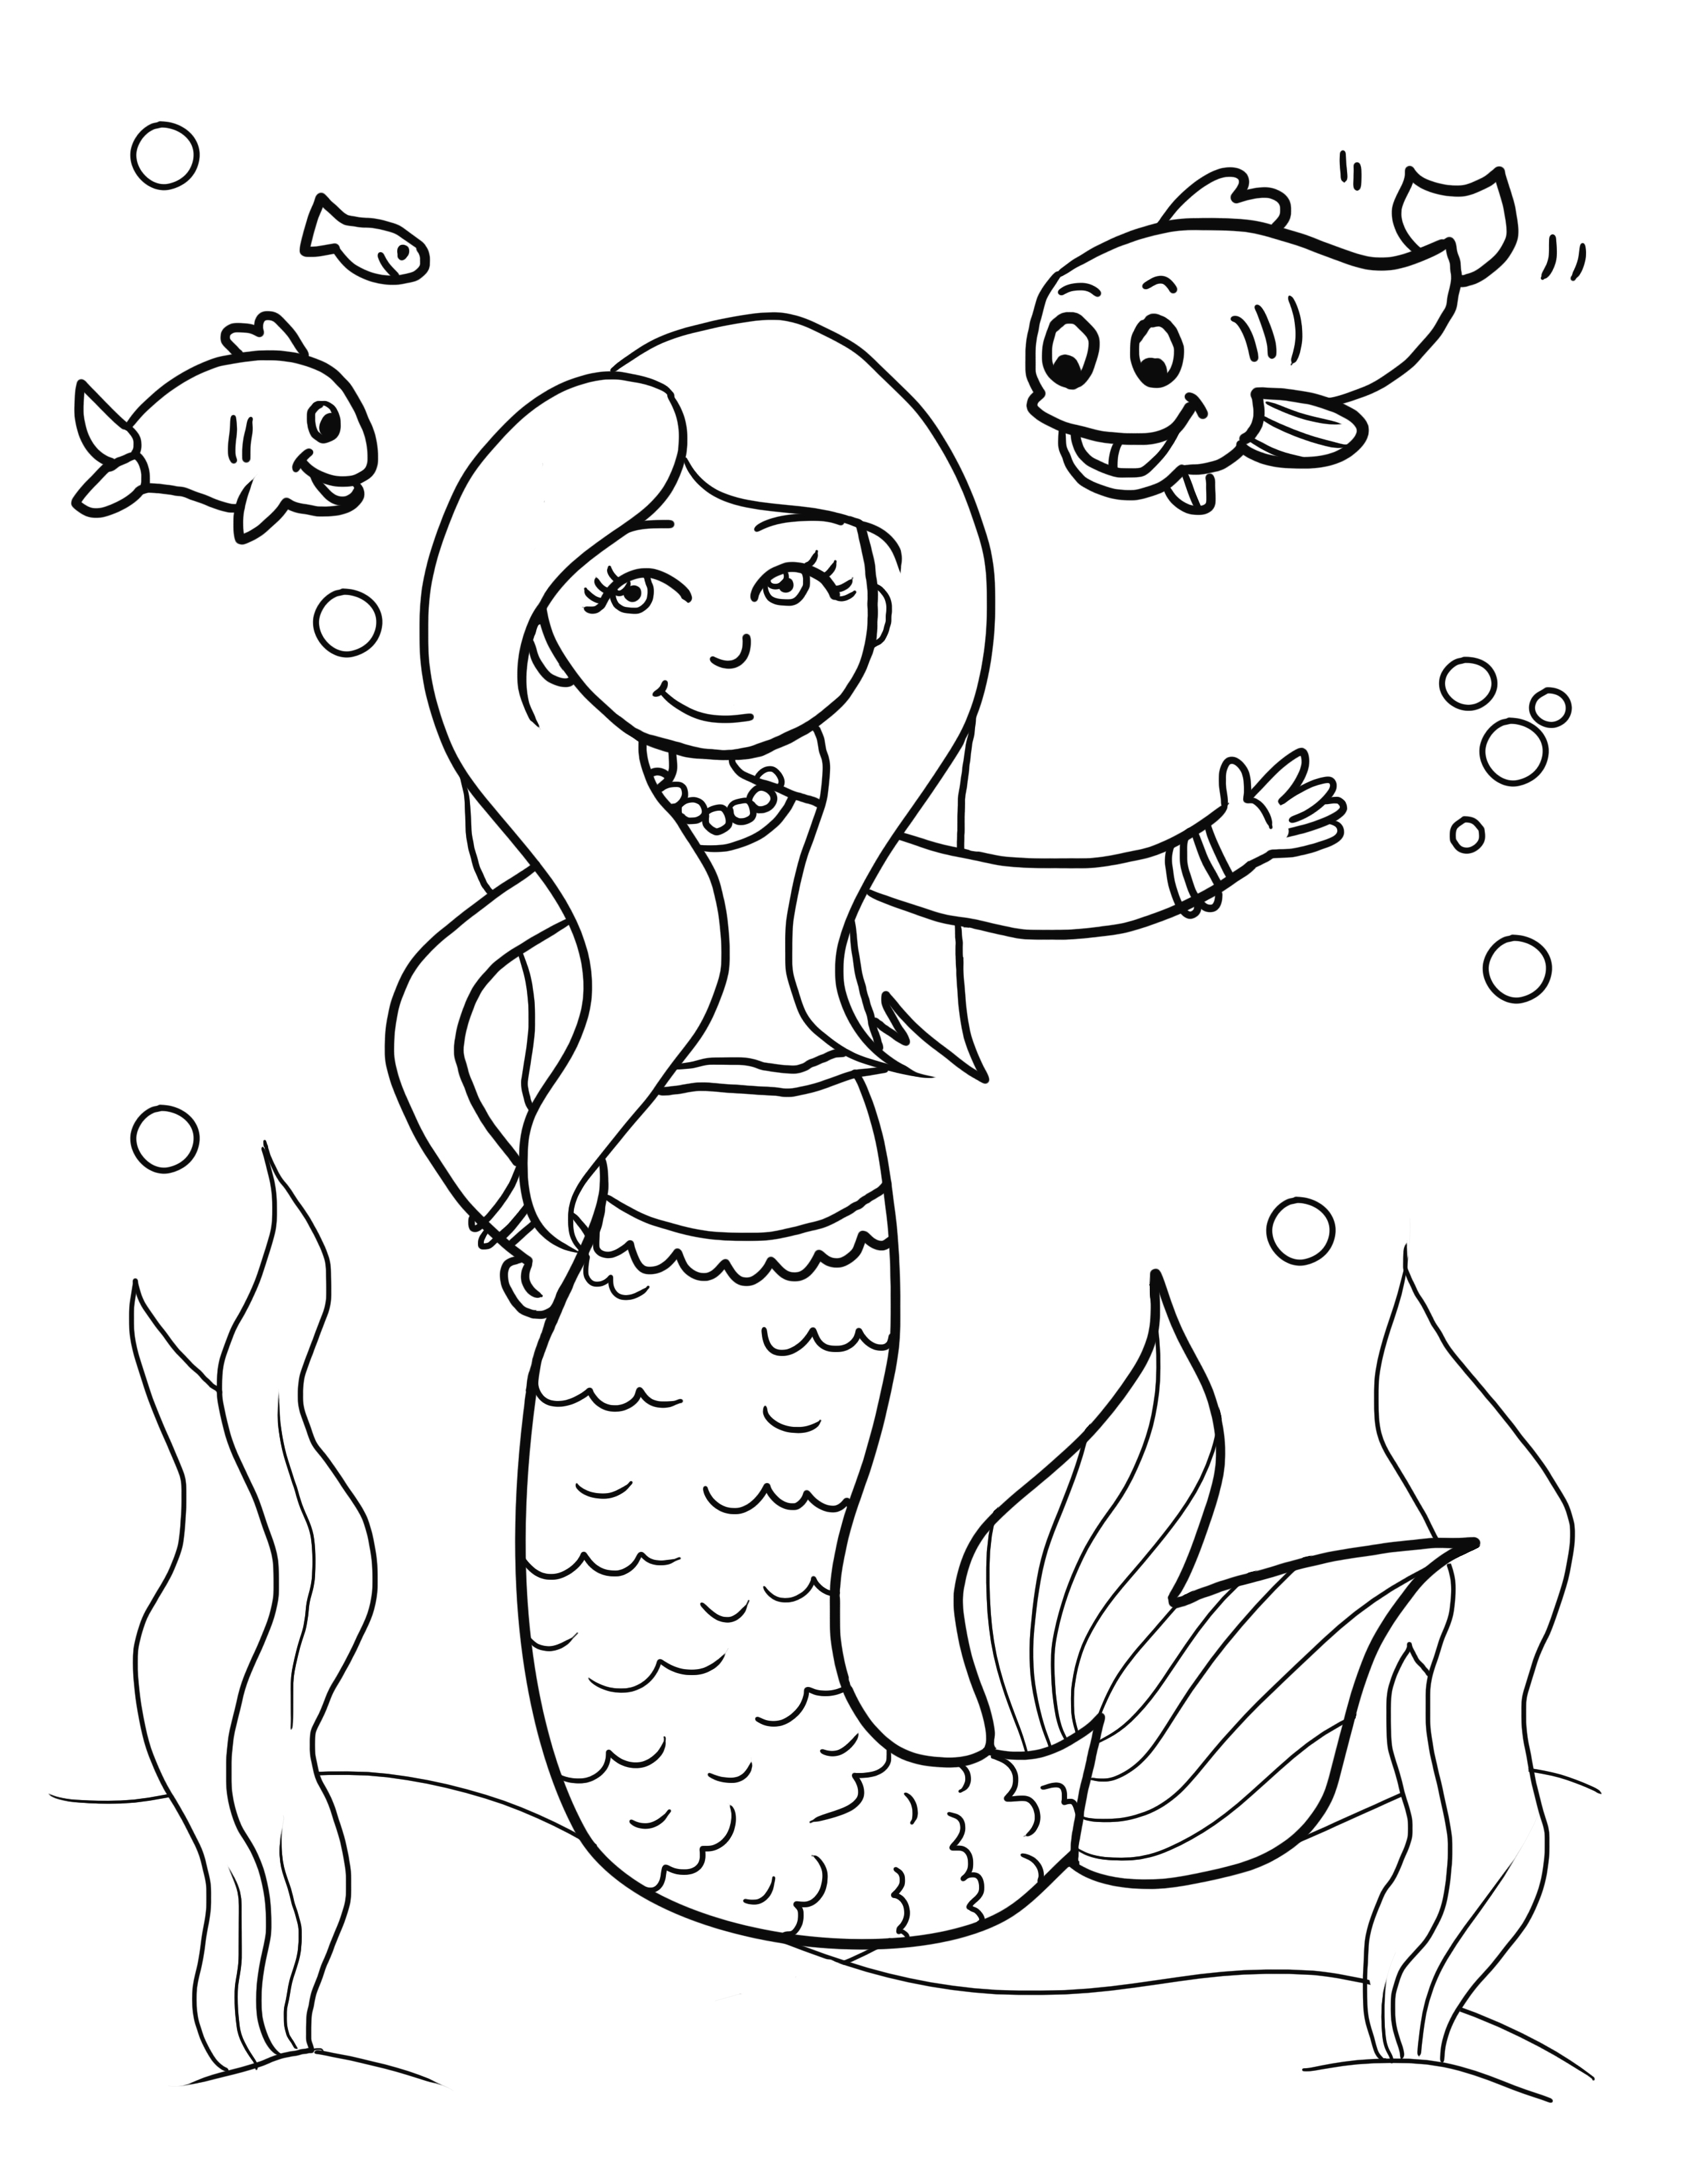 2550x3300 Step 9. Copic. Mermaid Coloring Pages Drawing For Kids Free Kids